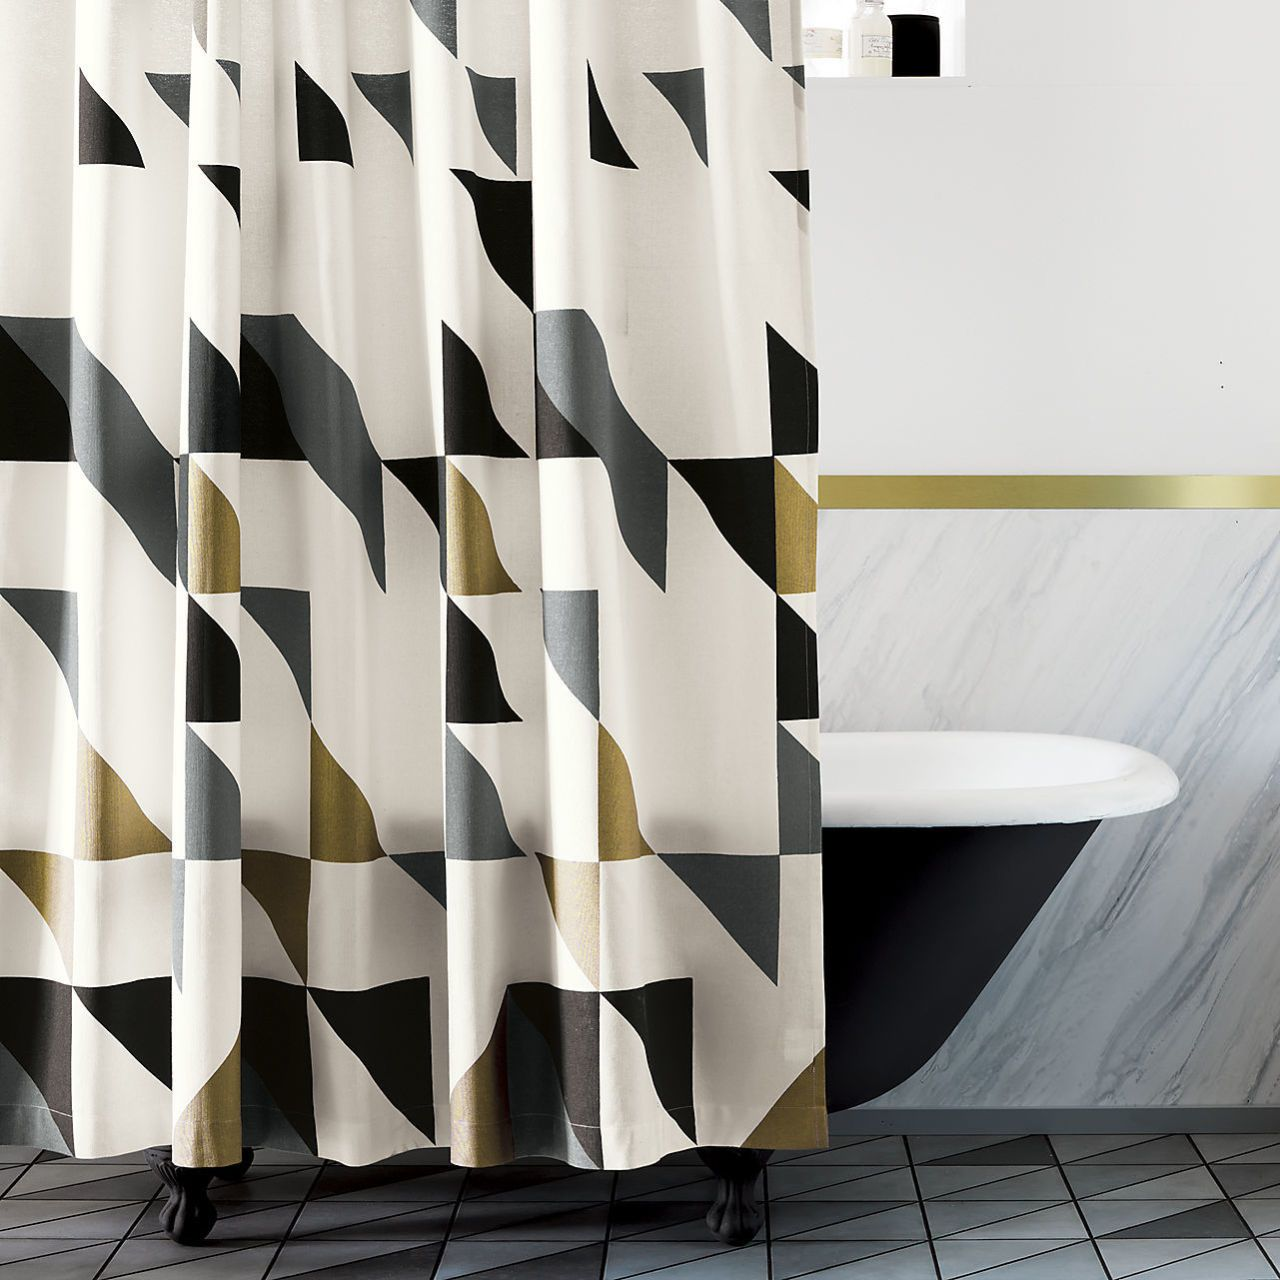 Charmant CB2 Triangle Shower Curtain